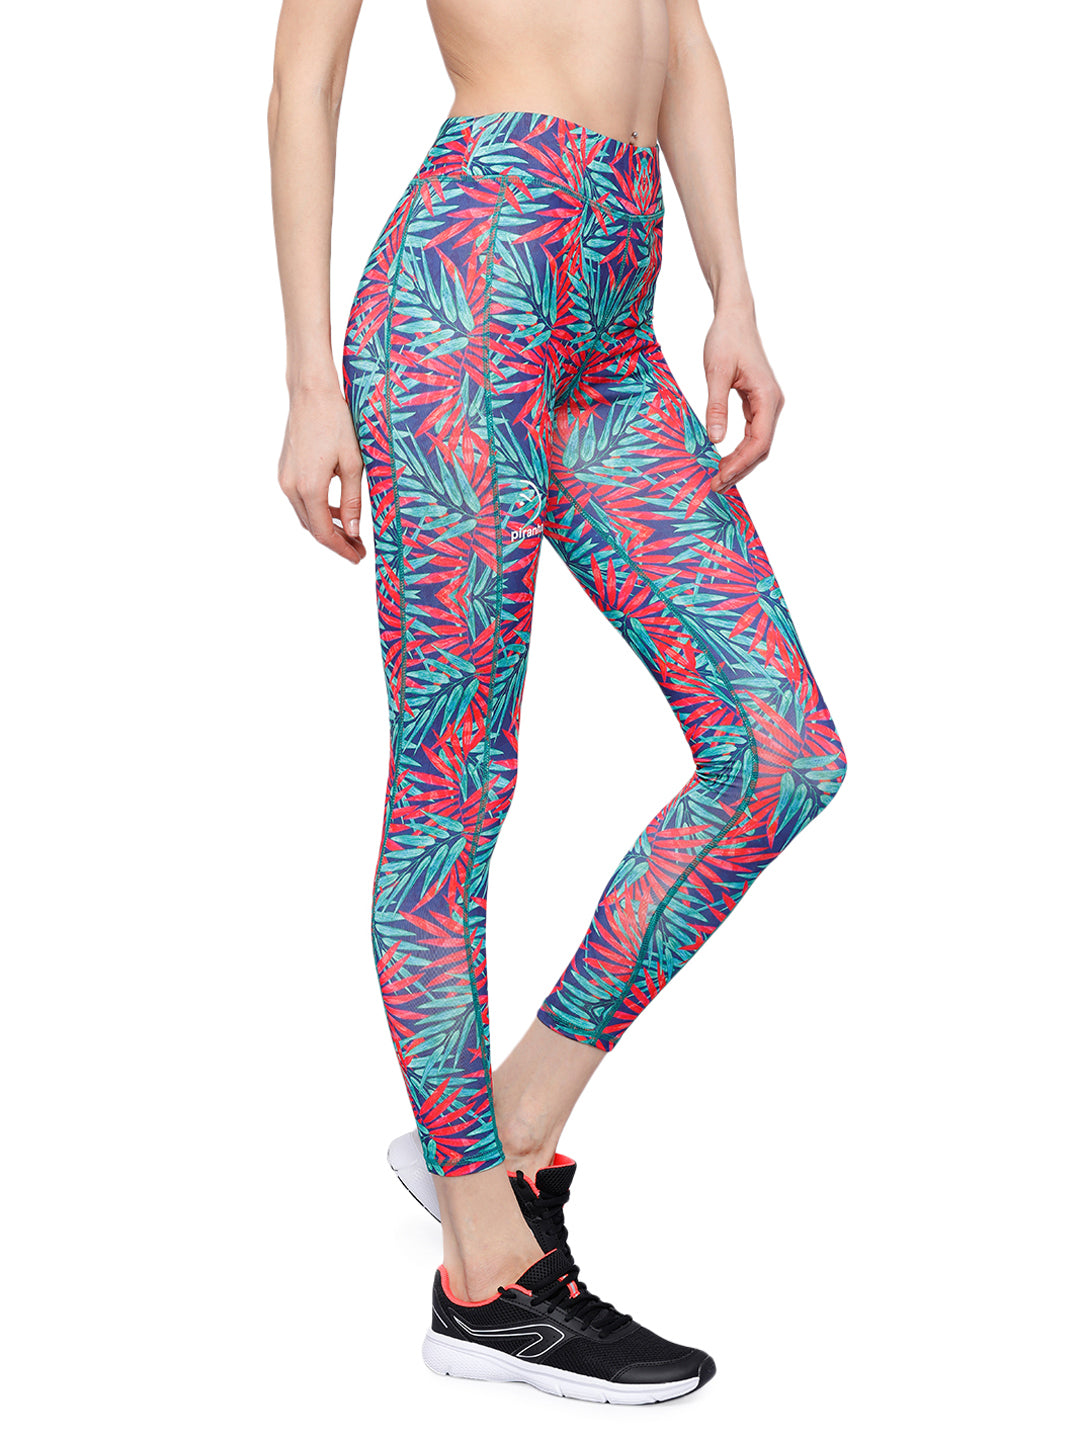 Piranha Women's Printed Yoga And Running Pants - YP151